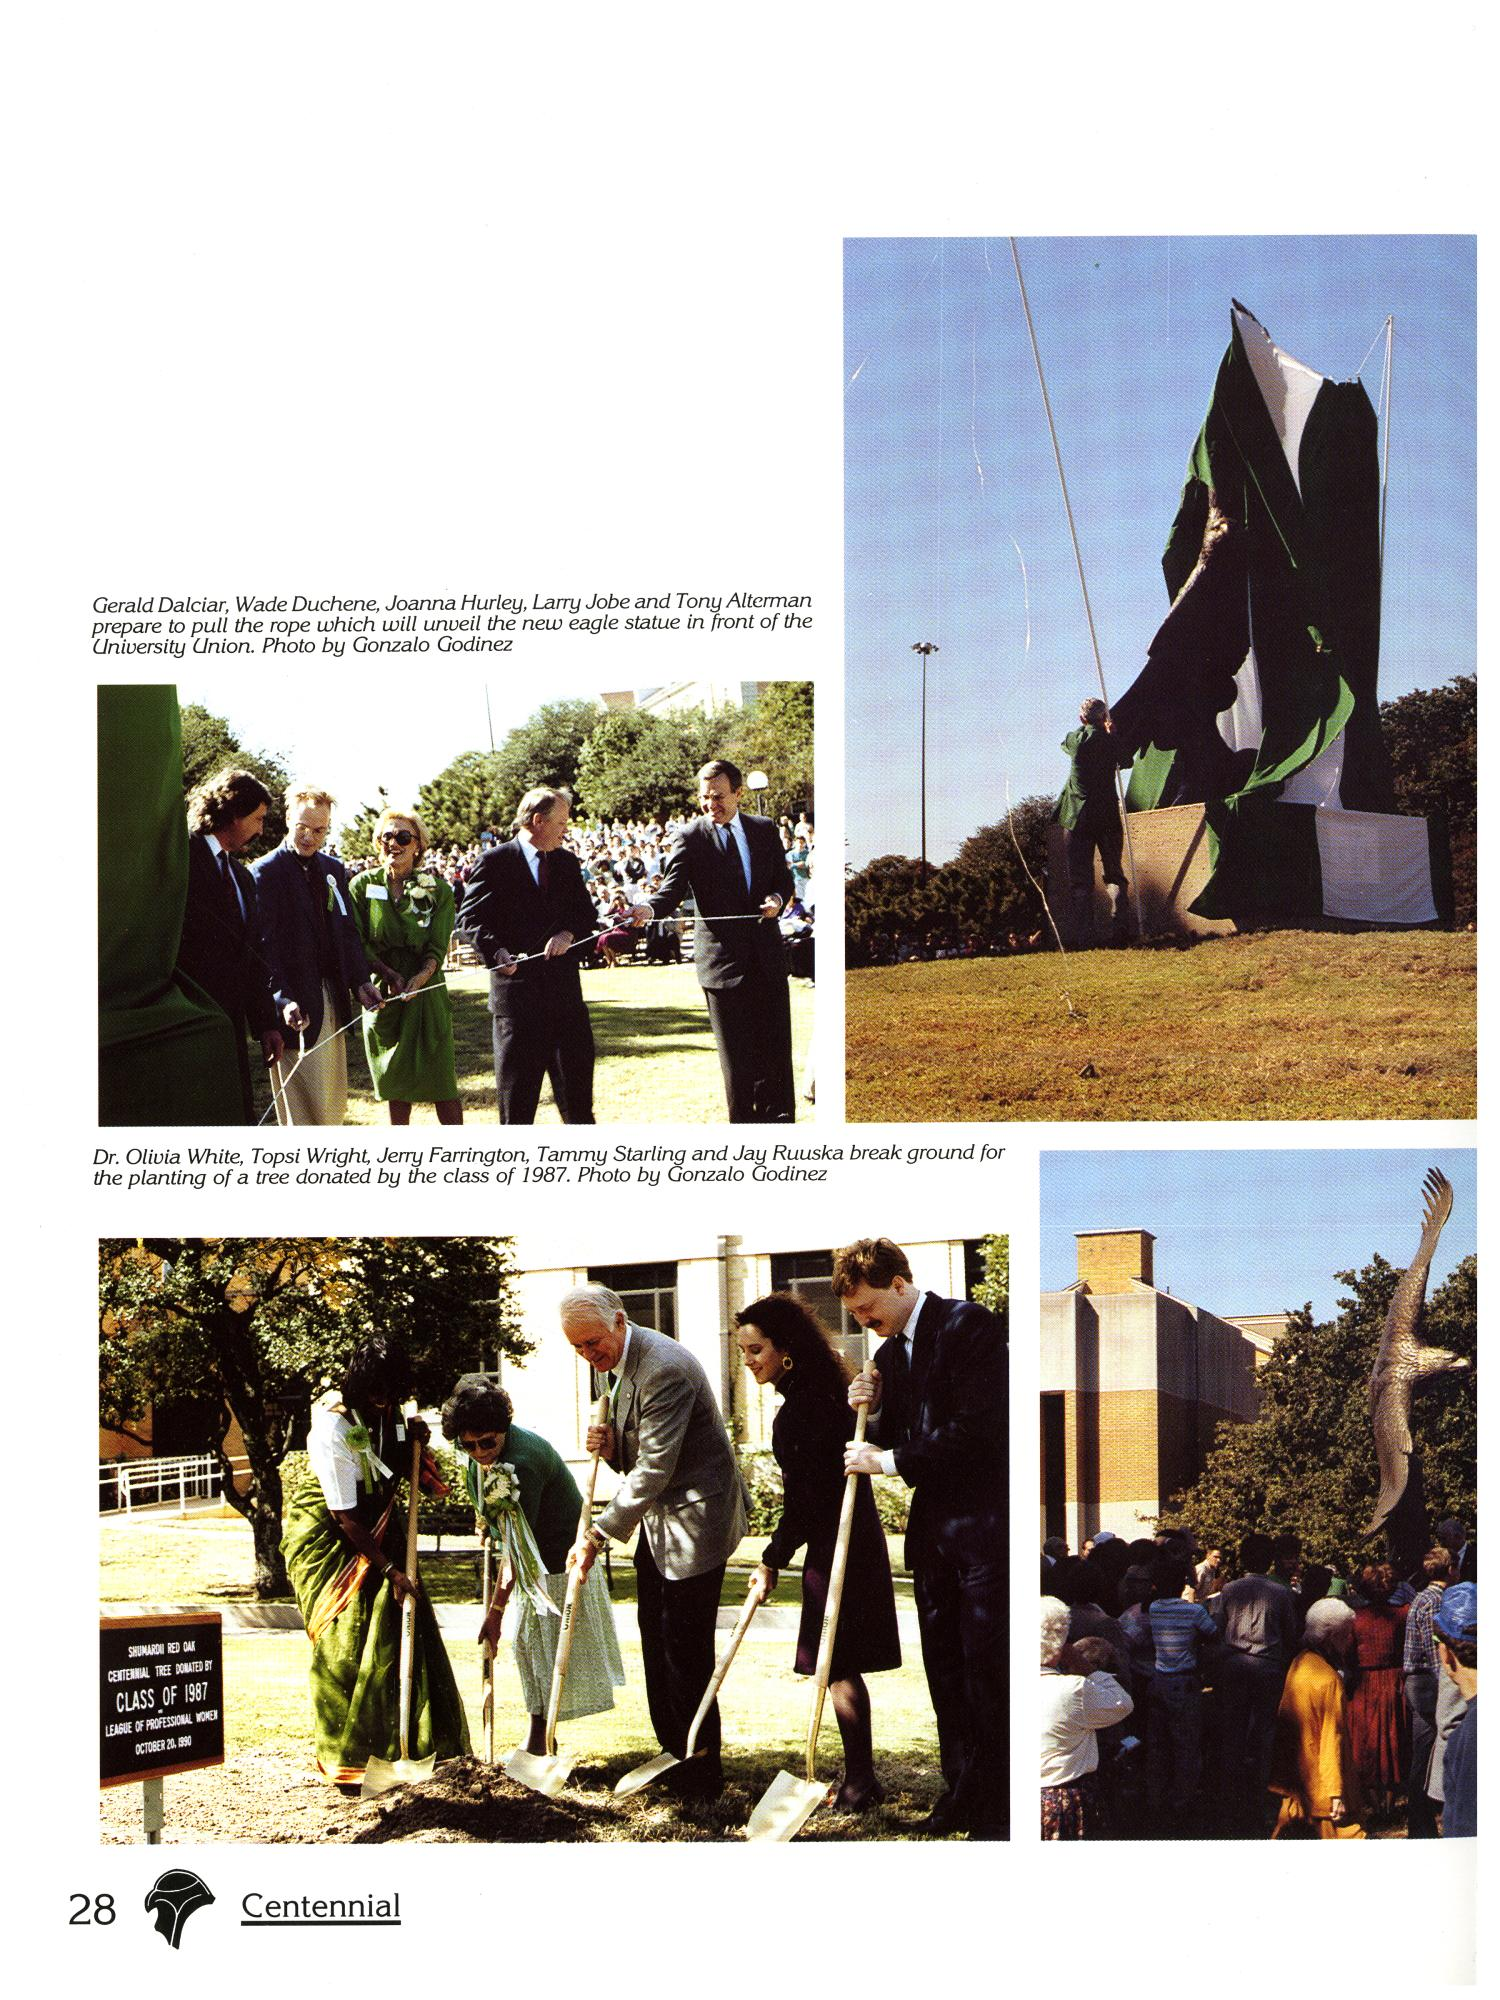 Set of four color photos with small text captions above the left two. Three show the unveiling of a large state of an eagle, first covered in green fabric, and then pulled off by a group men and women pulling a rope.